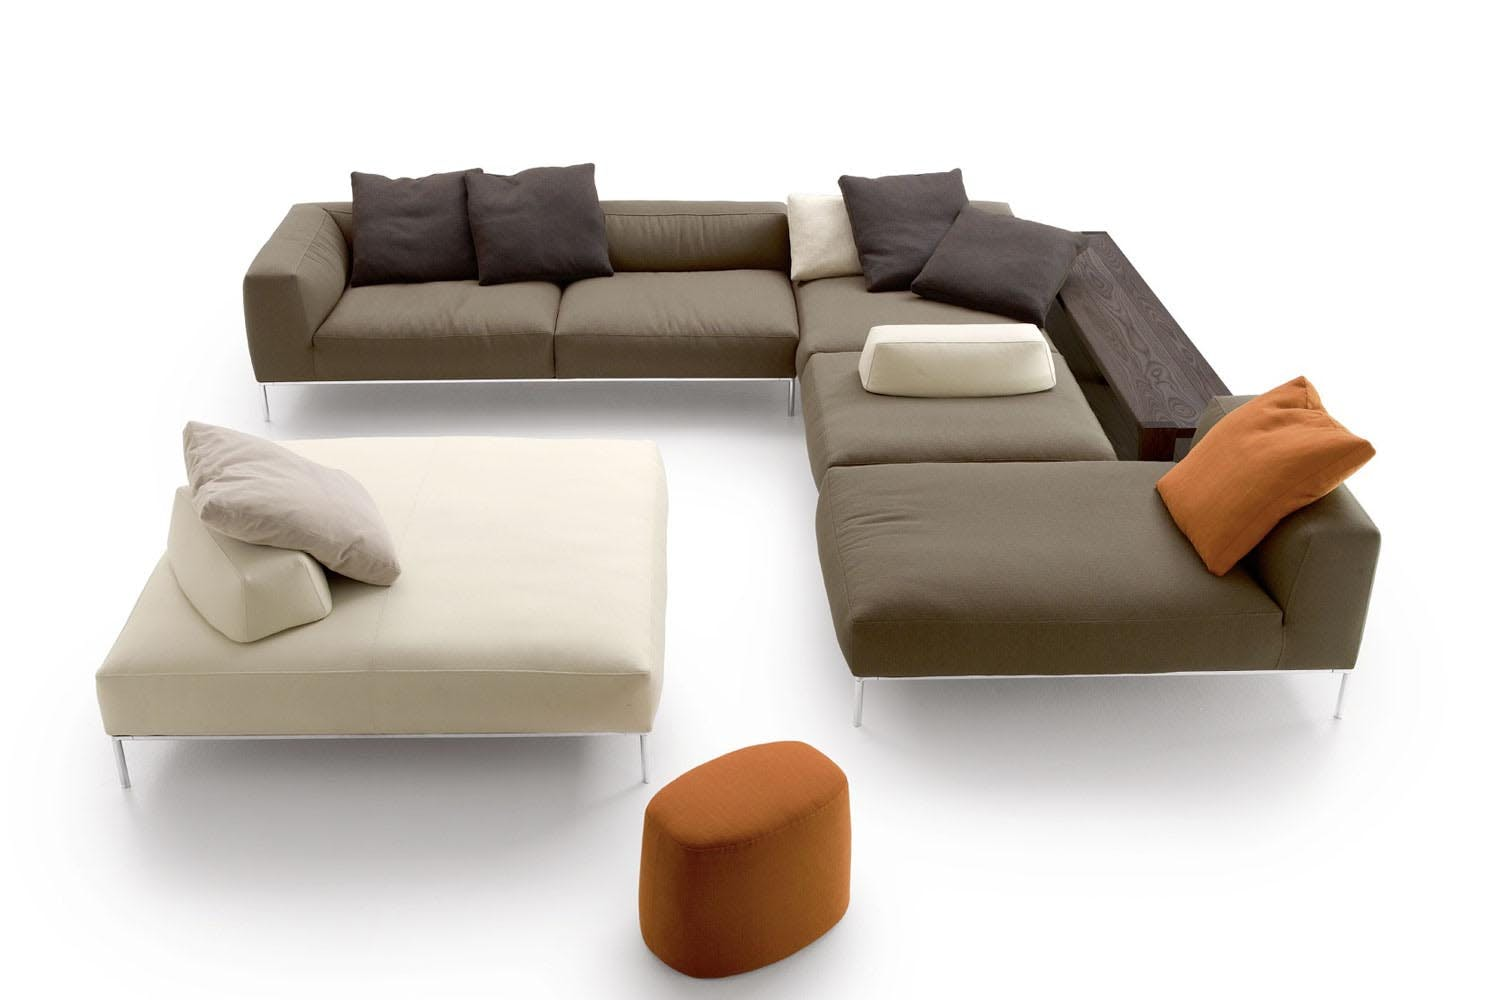 frank 2012 sofa by antonio citterio for b b italia space. Black Bedroom Furniture Sets. Home Design Ideas